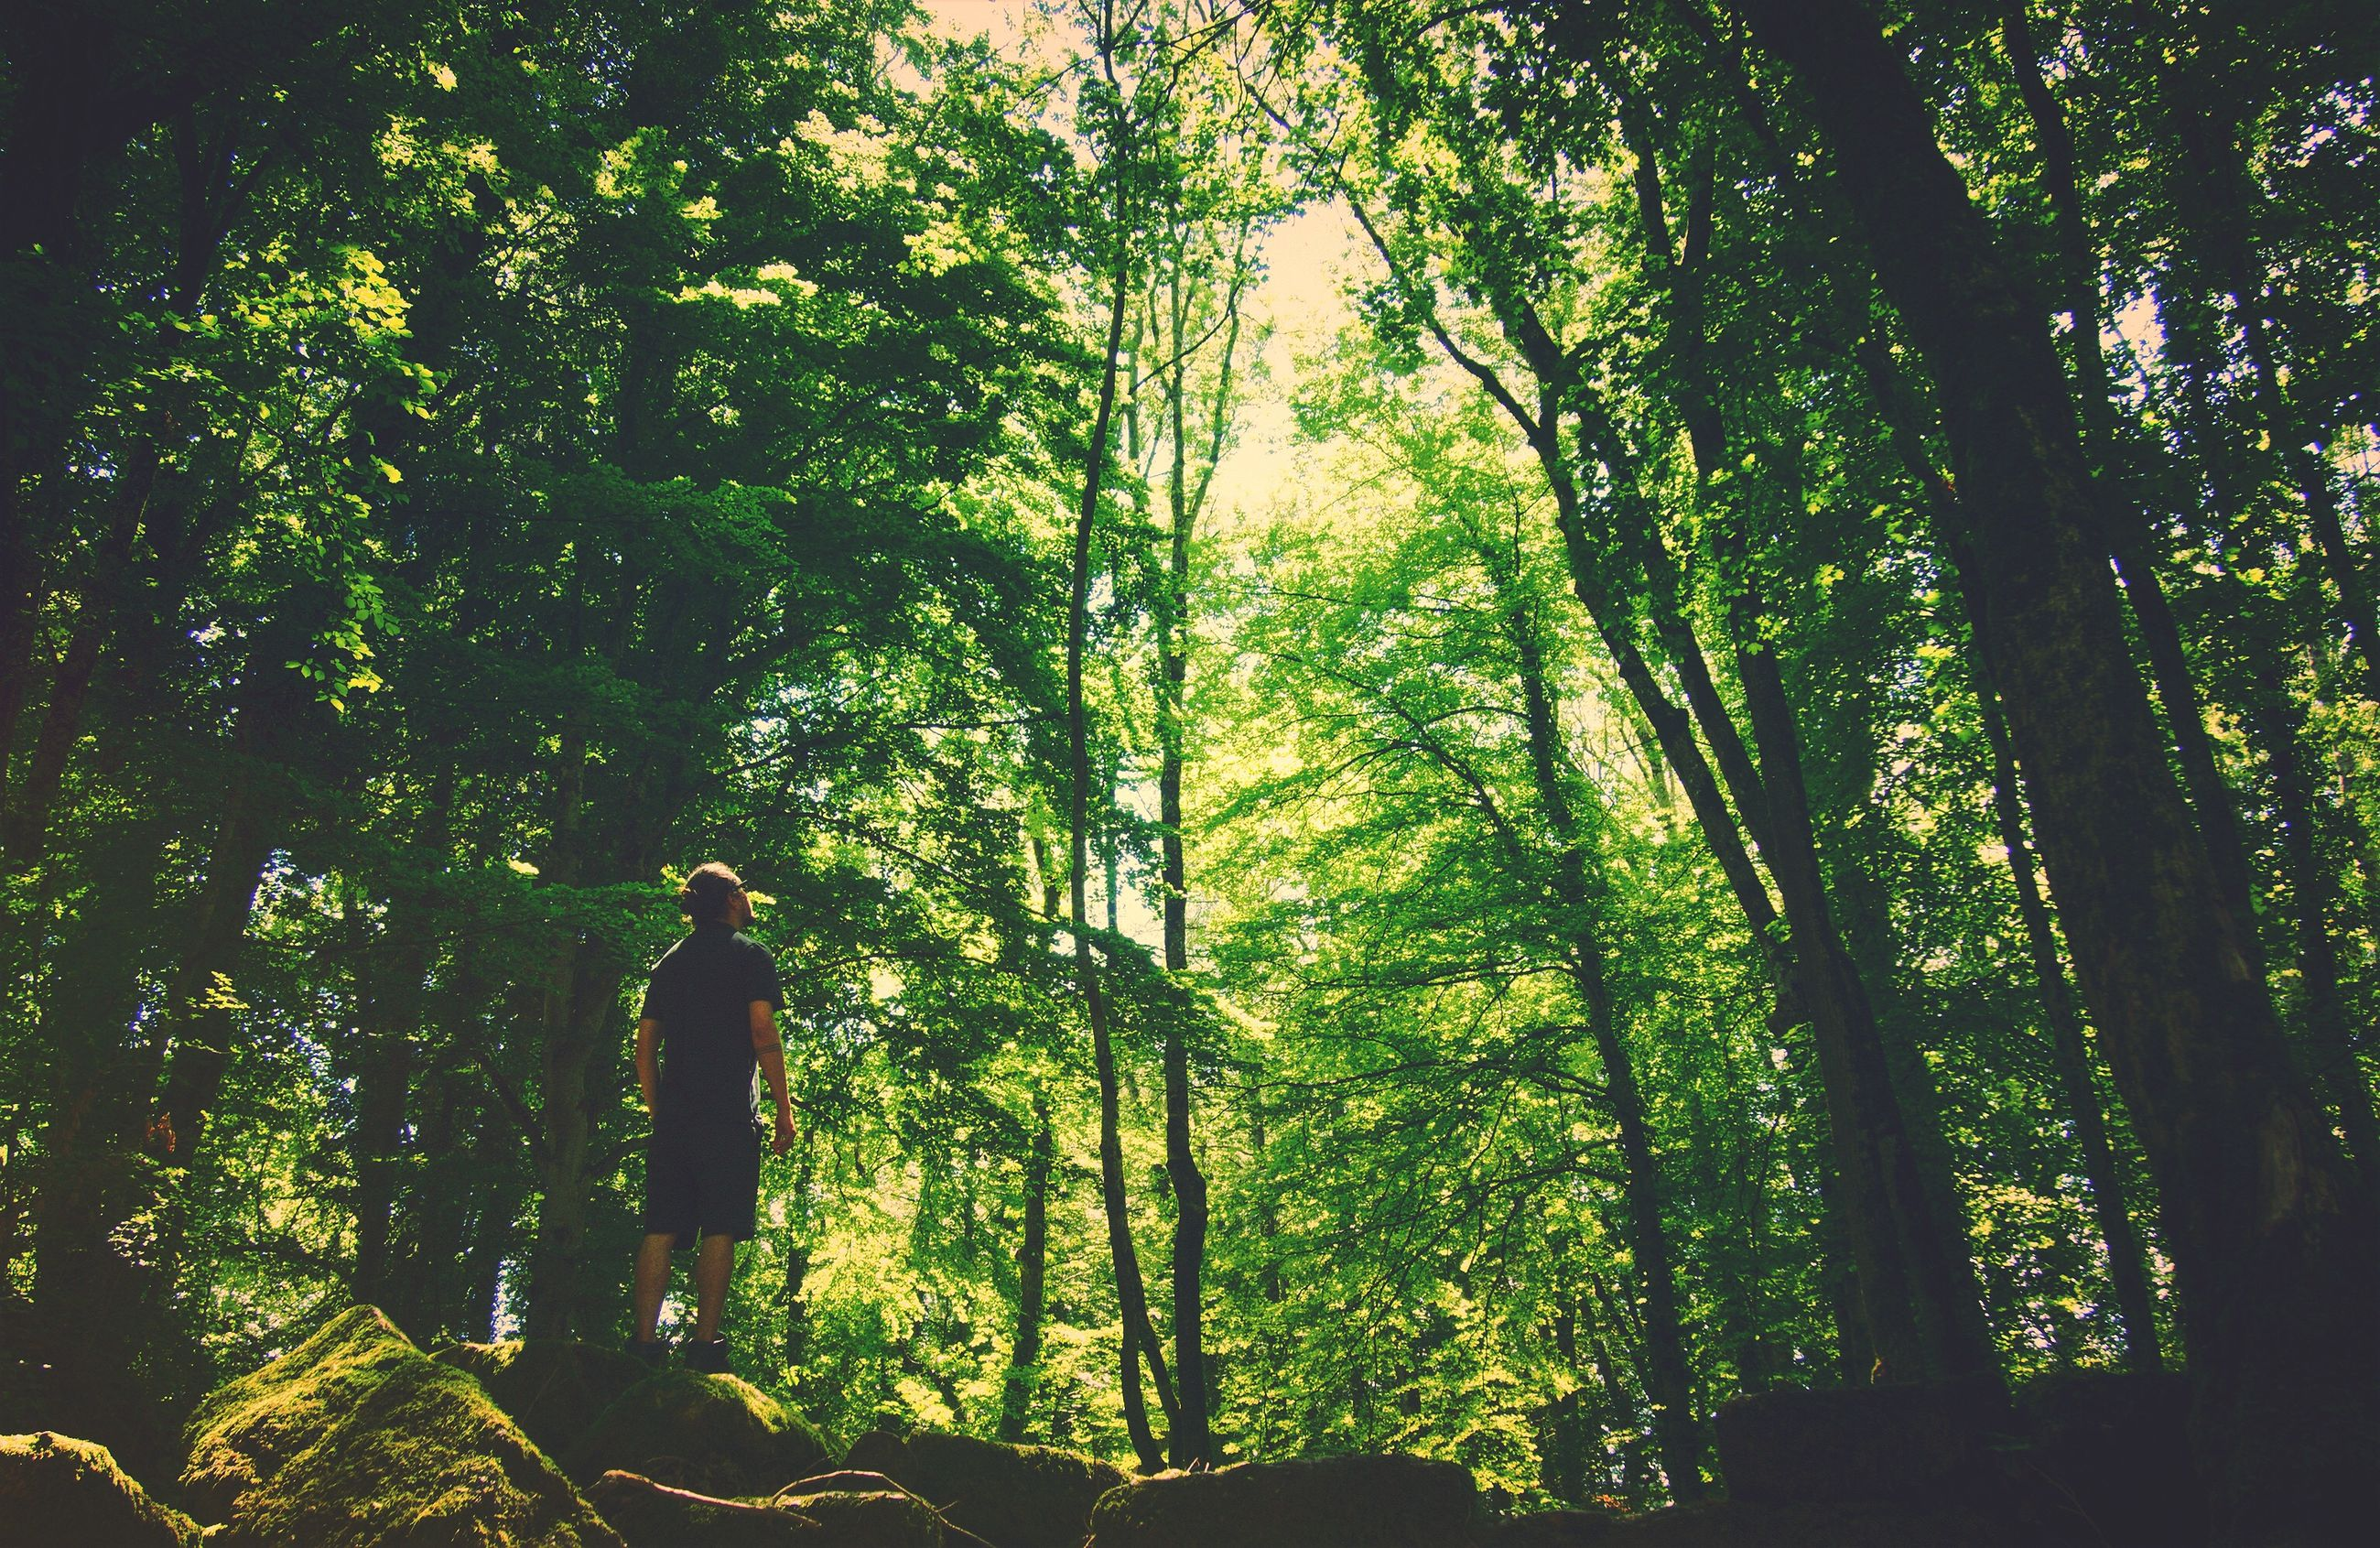 tree, plant, forest, land, one person, real people, nature, beauty in nature, growth, standing, woodland, green color, day, tree trunk, leisure activity, trunk, lifestyles, tranquility, outdoors